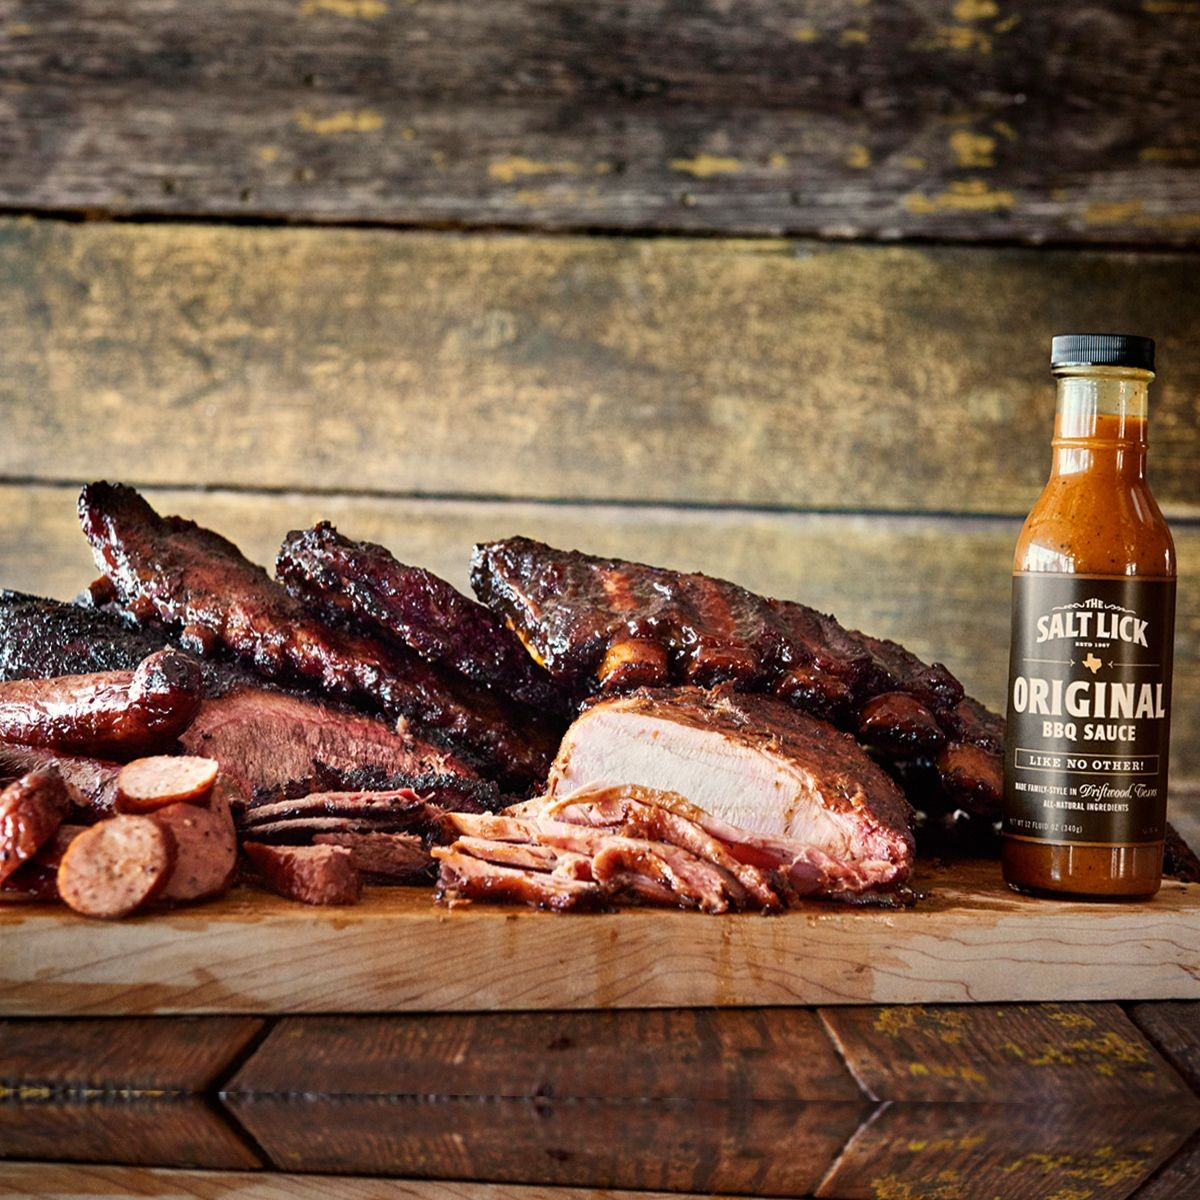 the-ranch-beef-ribs-brisket-smoked-turkey-pork-ribs-and-sausage.0c3d6c1c3ab739b6d1ceecb2b894b64a